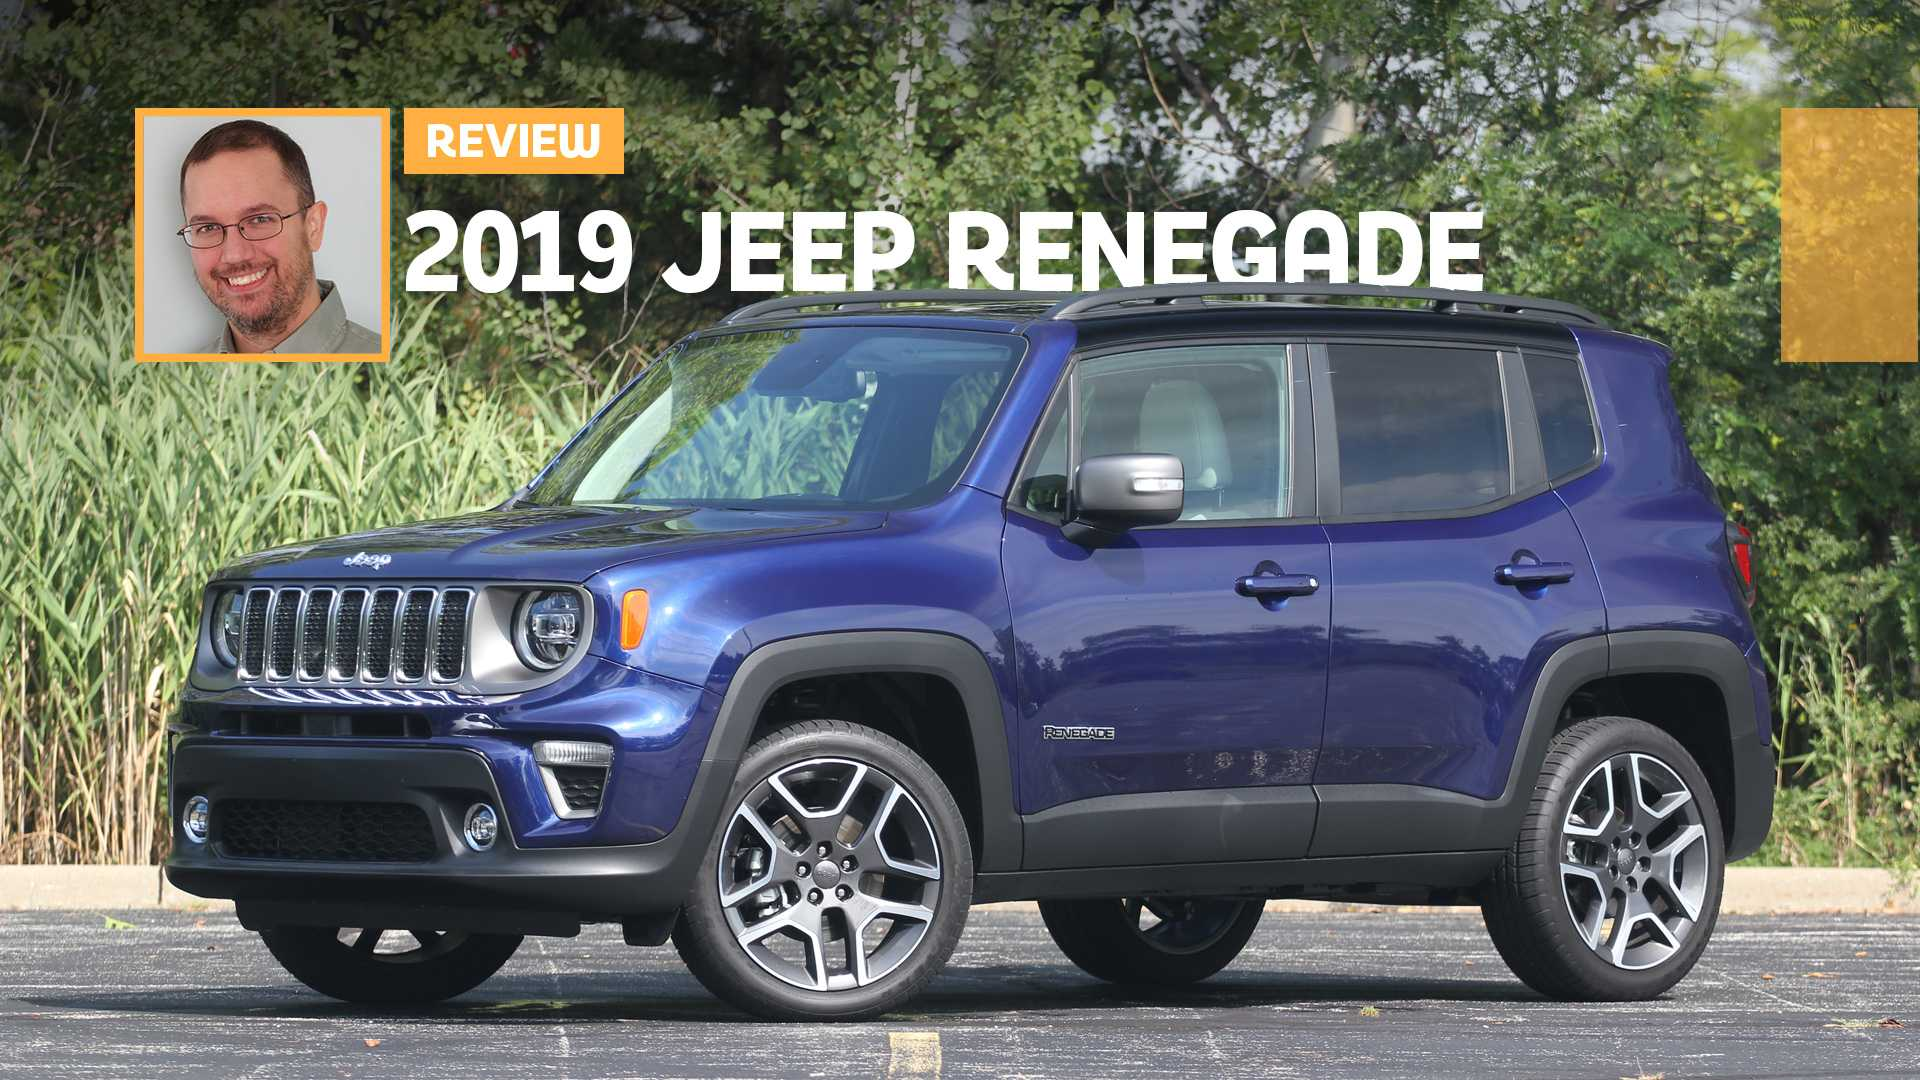 2019 Jeep Renegade Limited 4x4 Review: Baby Grand